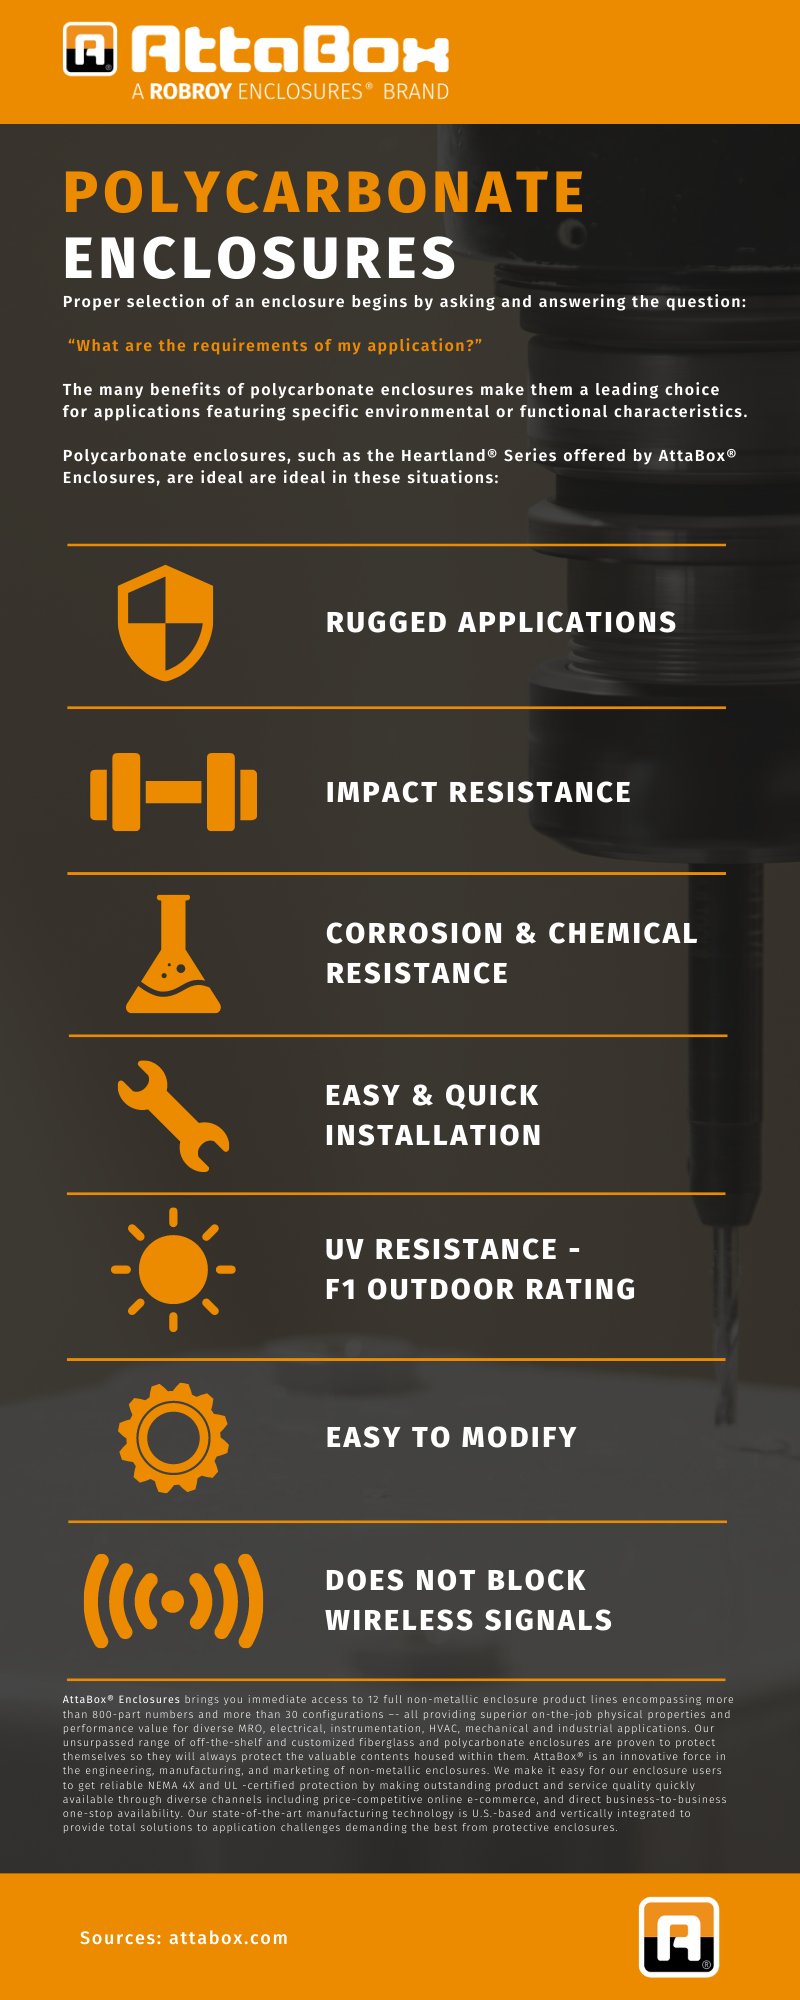 infographic showing the benefits of polycarbonate enclosures